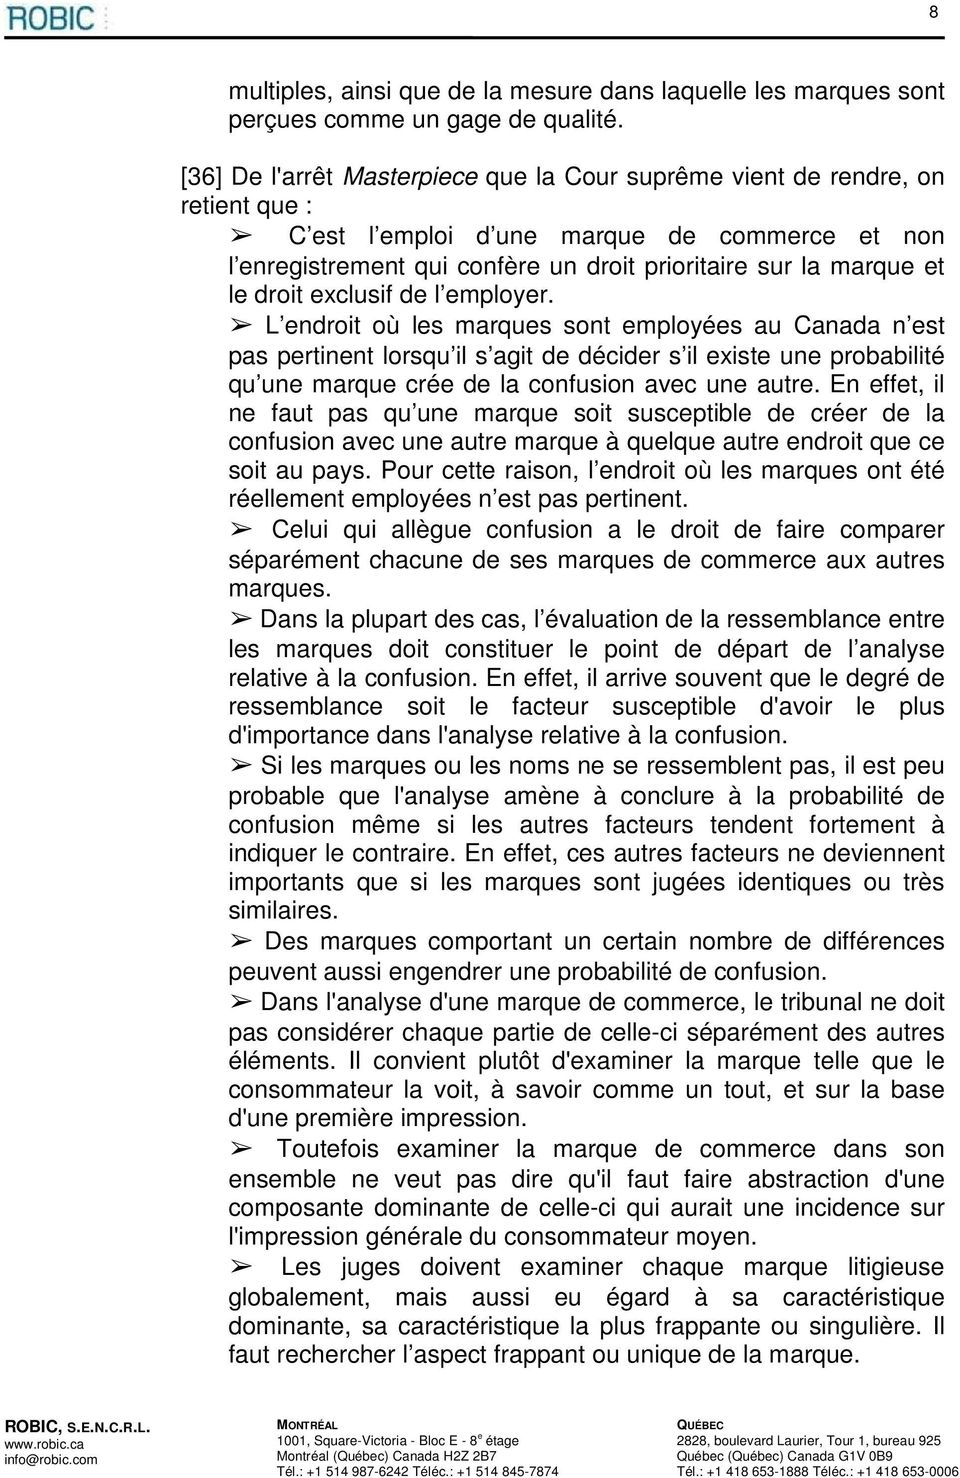 droit exclusif de l employer.